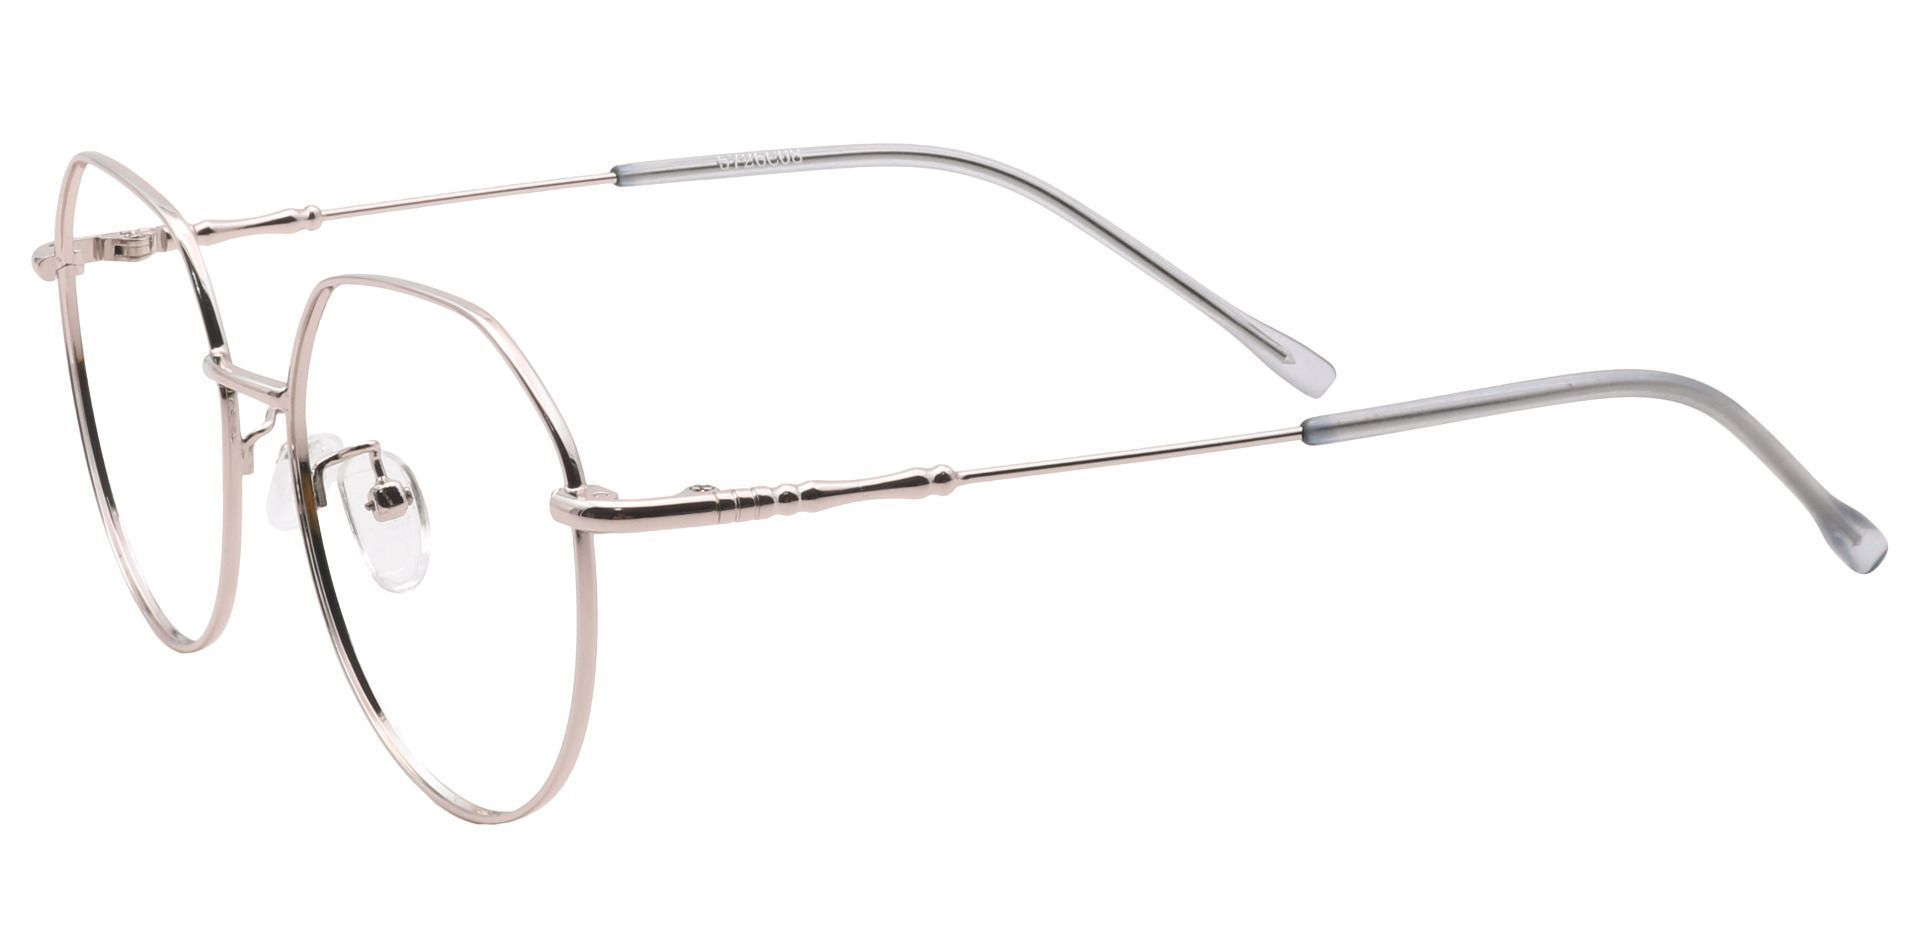 Wesley Round Blue Light Blocking Glasses - Clear